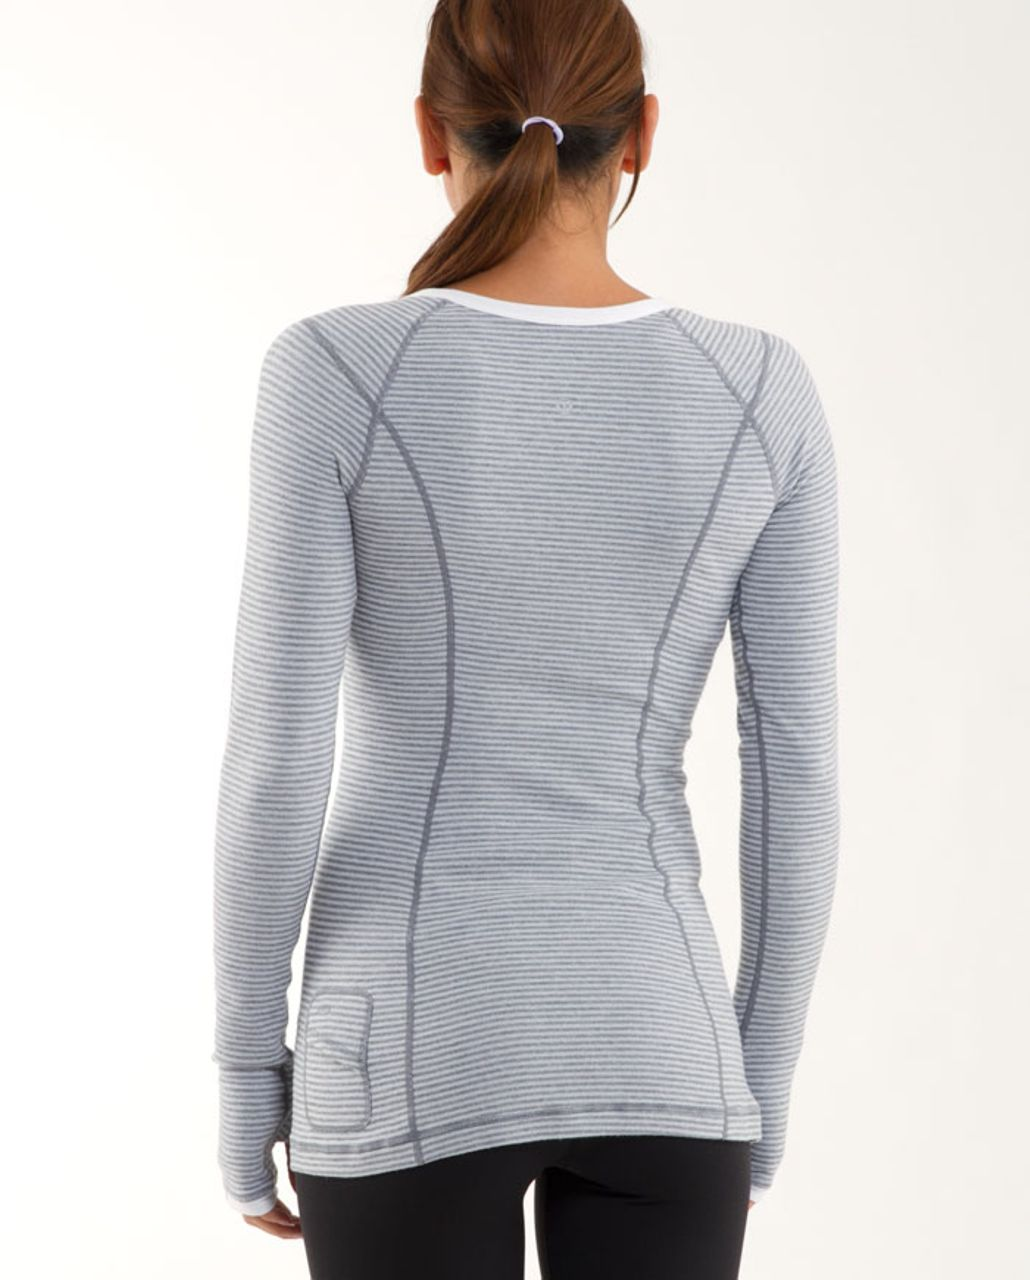 Lululemon Run: Turn Around Long Sleeve - White Heathered Blurred Grey Mini Check /  Reflective Sparkle Splatter